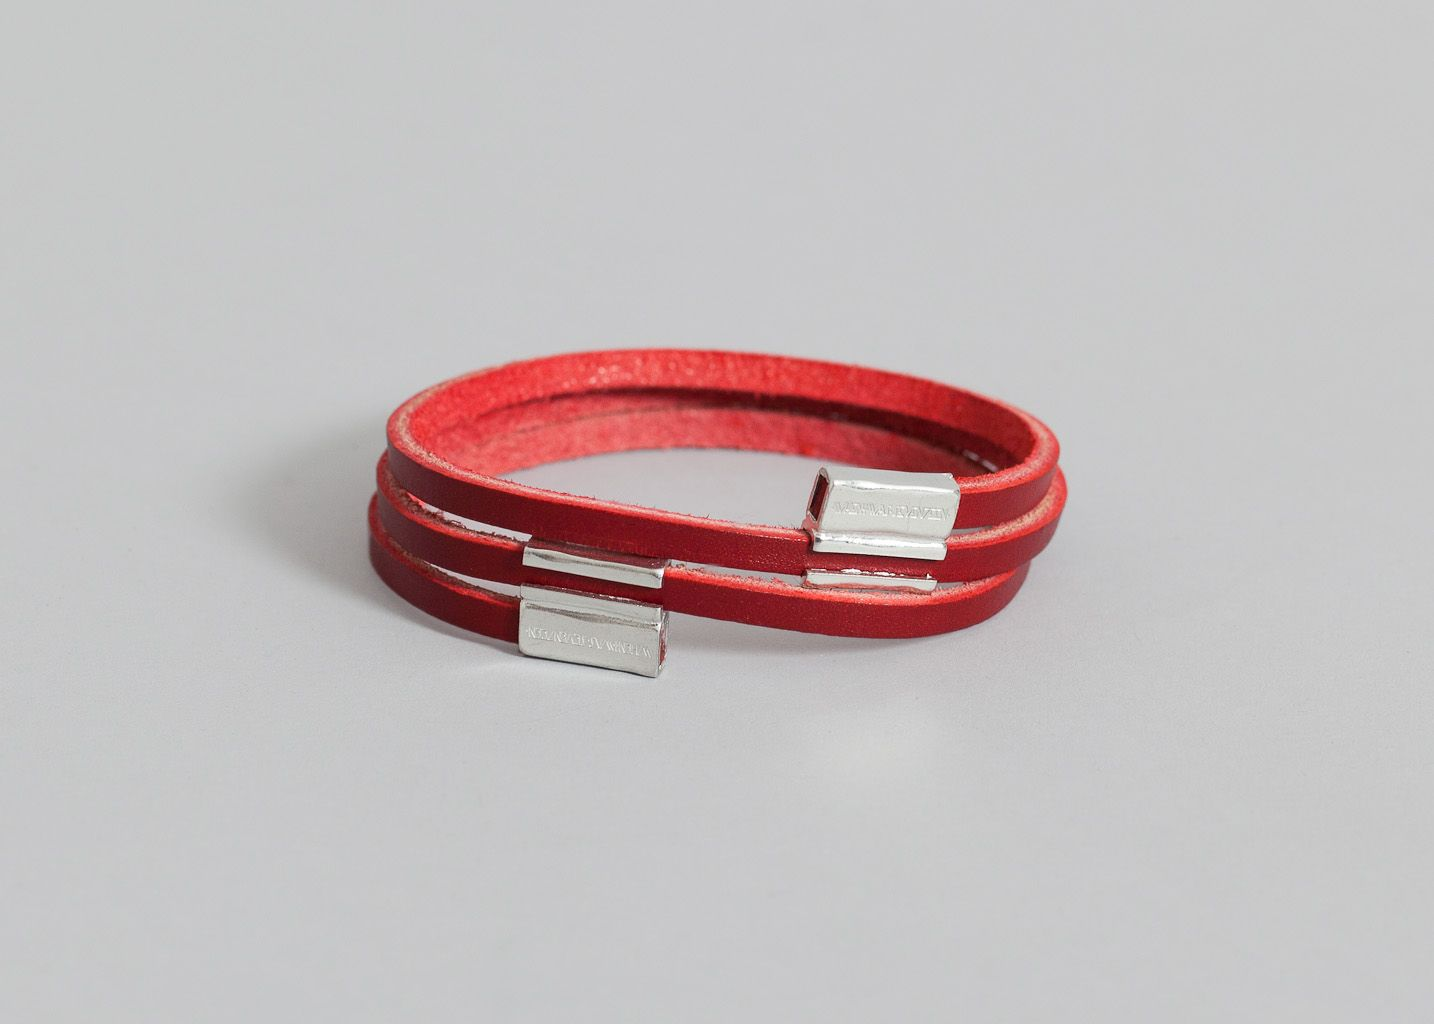 Bracelet Atamé - When I Was Seven7een